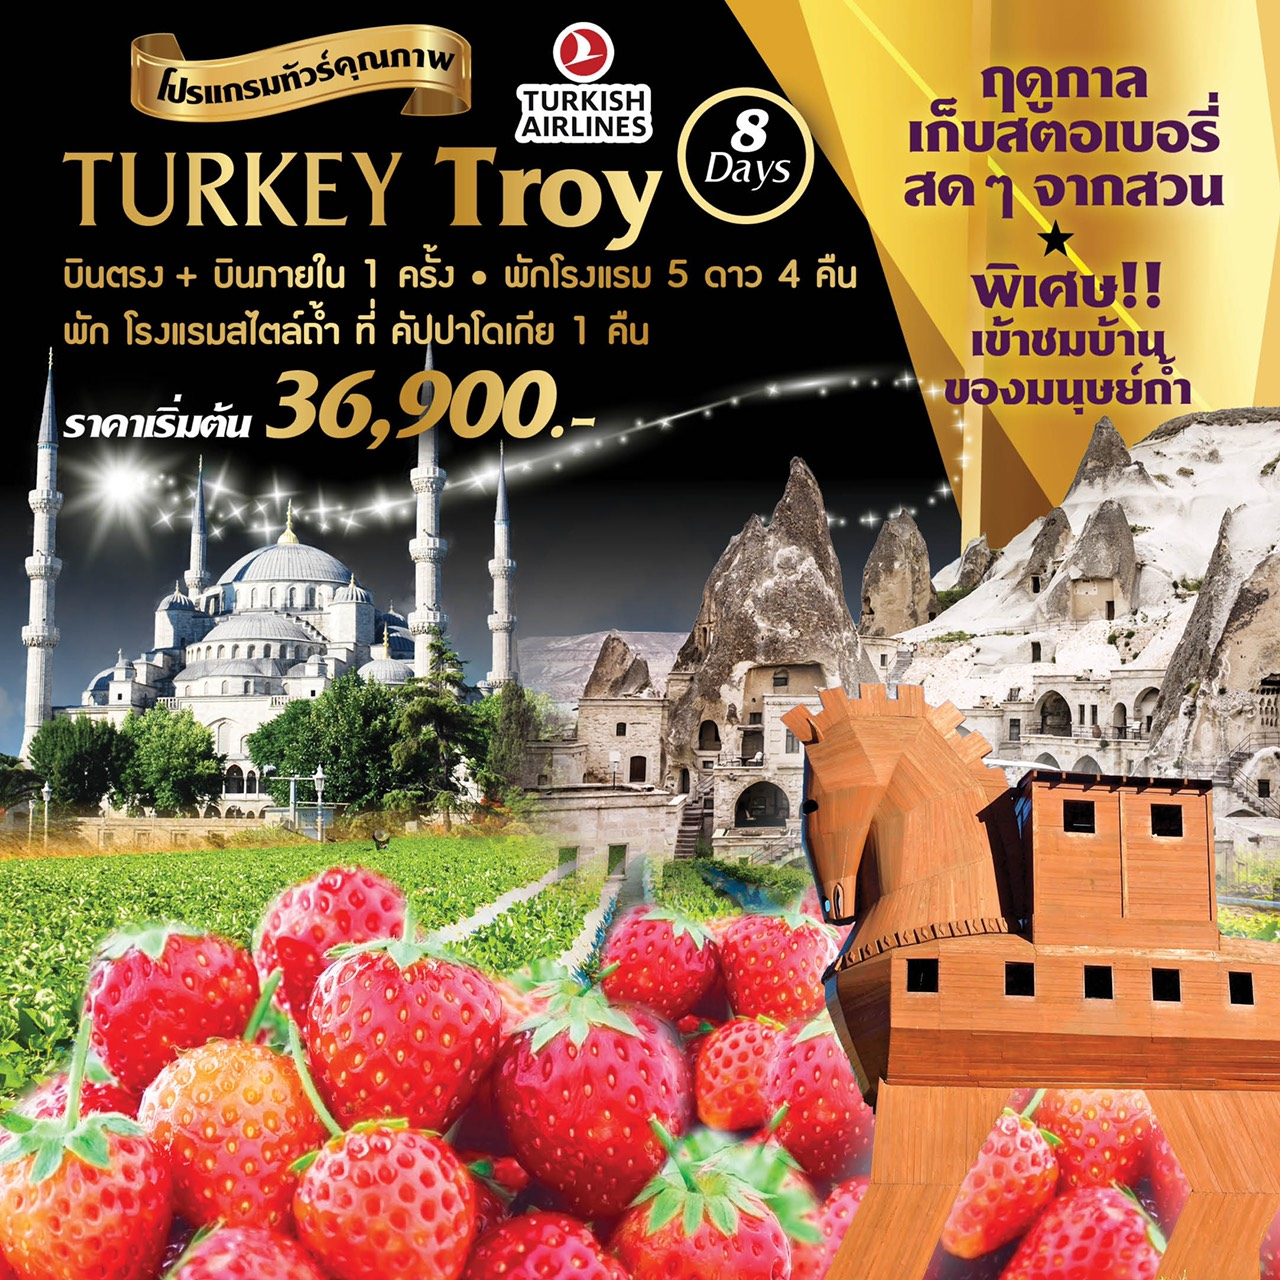 ทัวร์ตุรกี Turkey Troy 8 Days 5 Nights (AUG-OCT19)(TK )